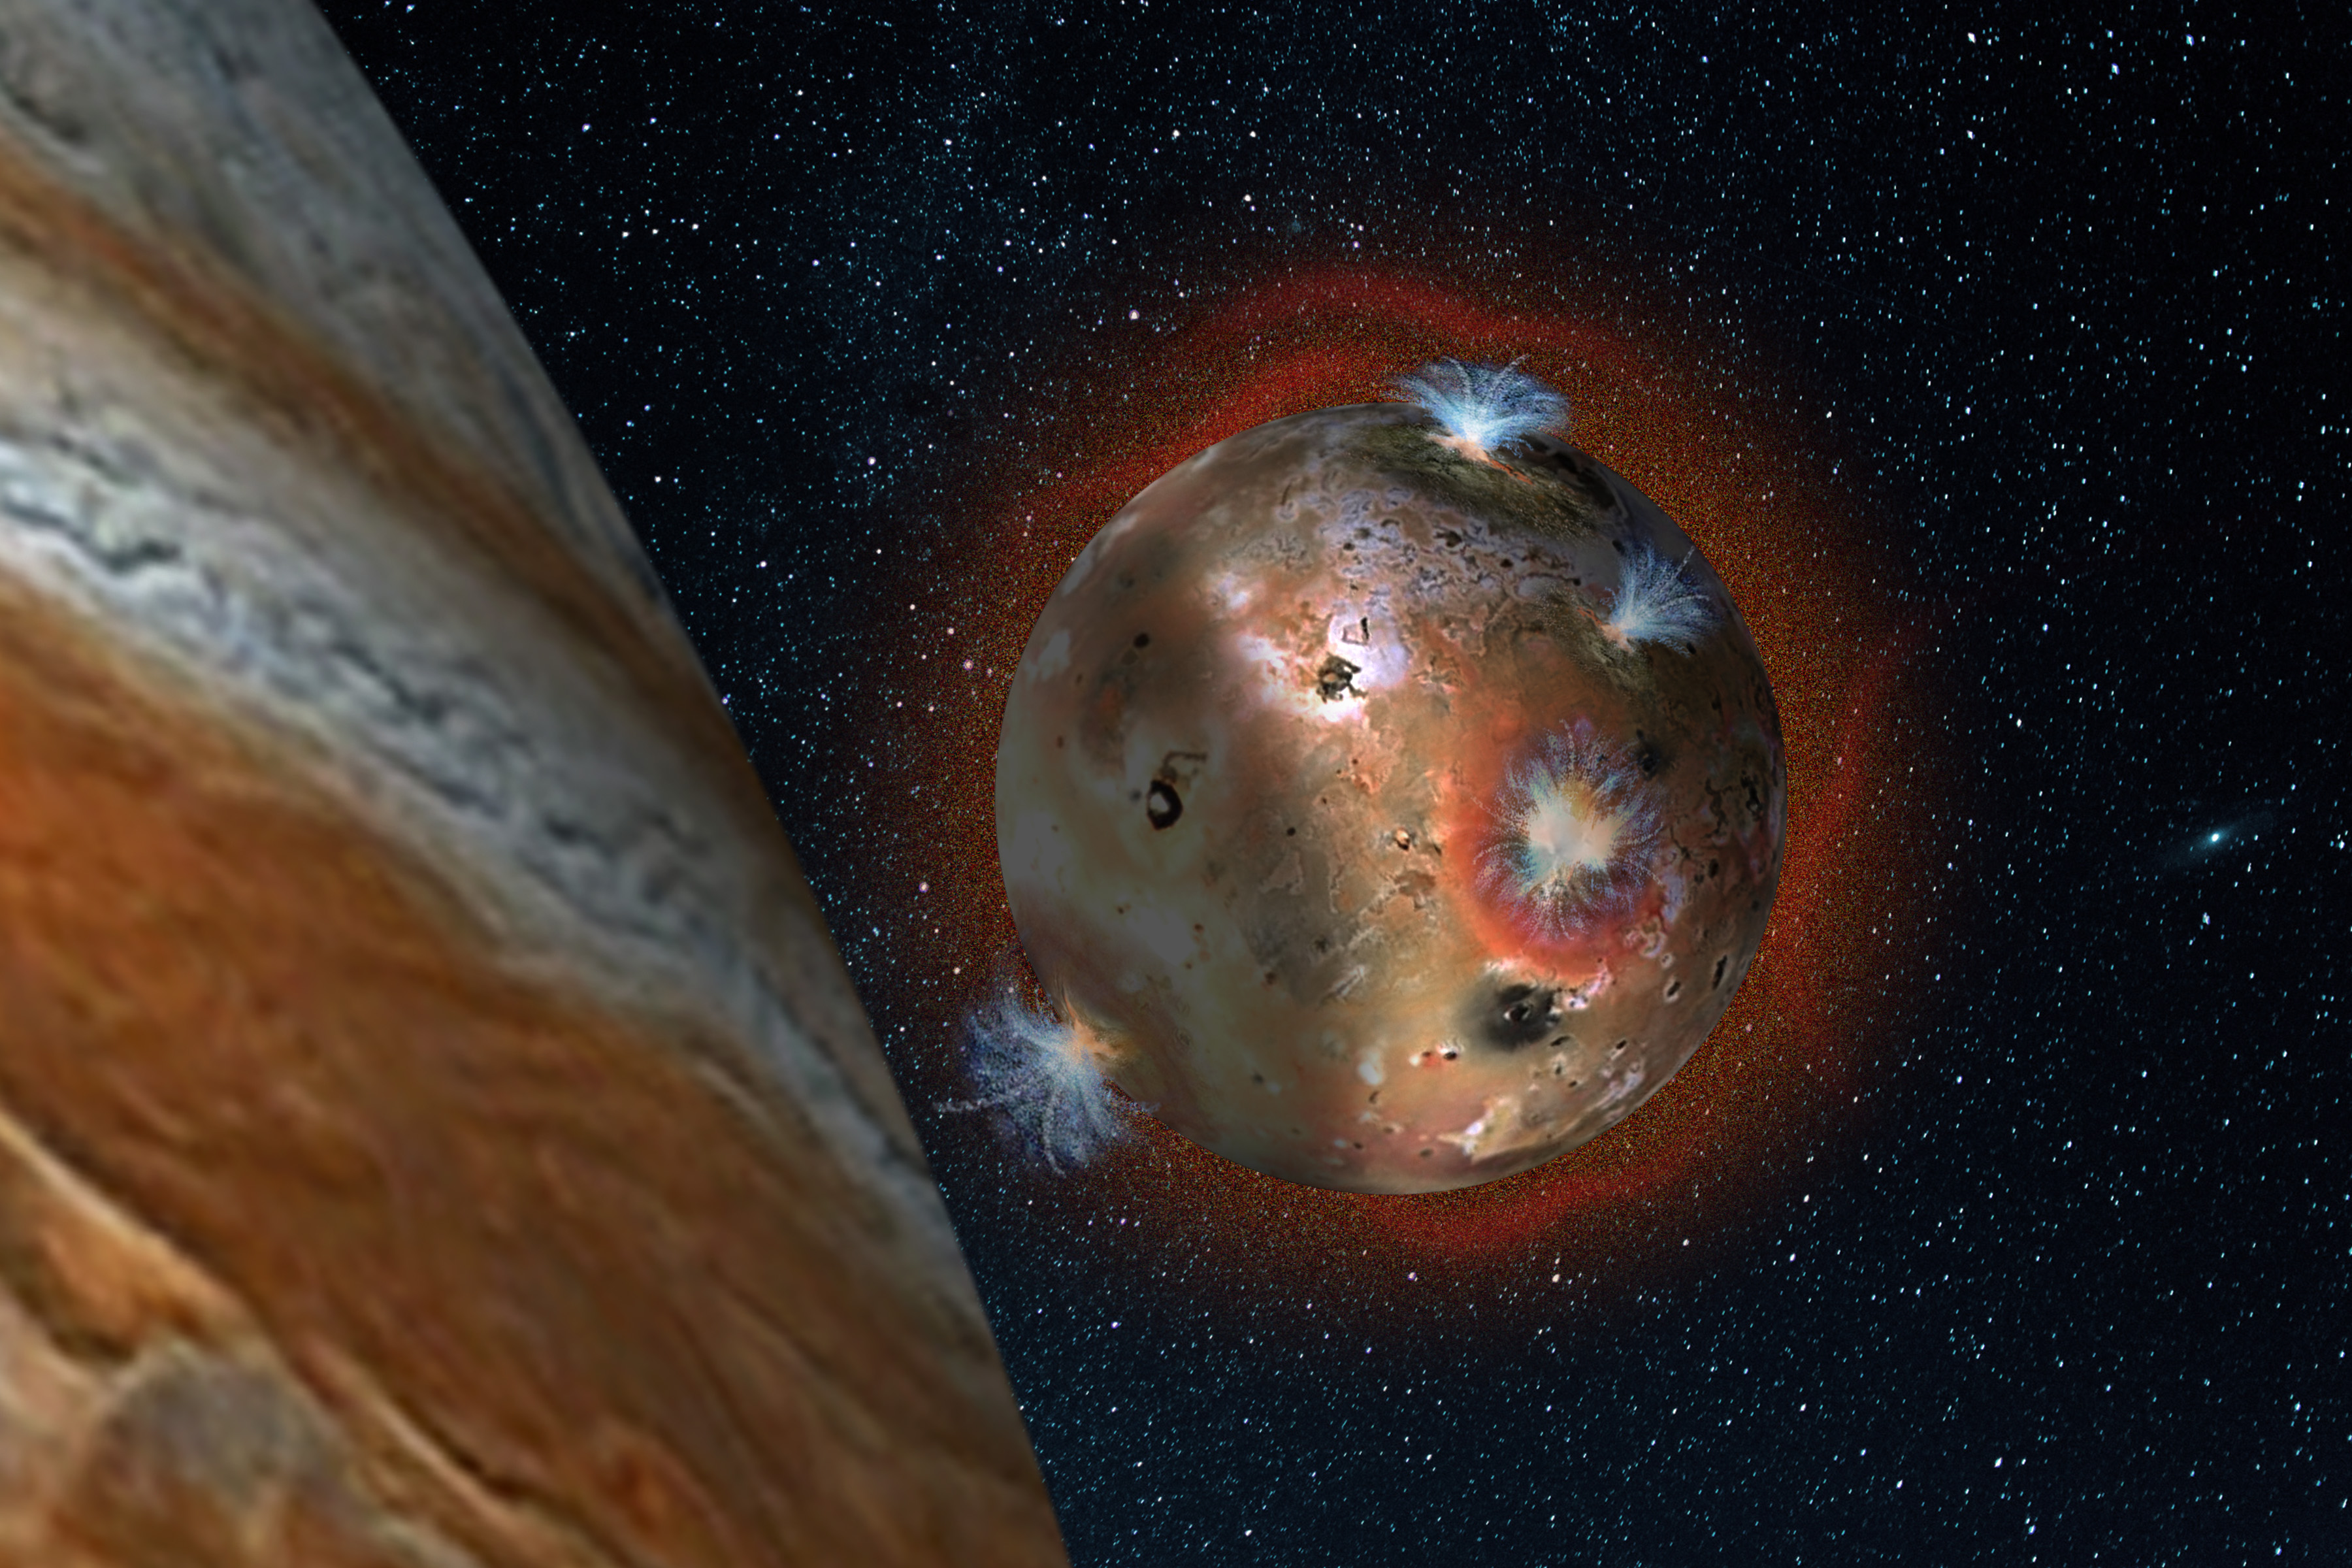 An artist's rendering depicts Io's volcanic plumes creating the atmosphere in sunlight